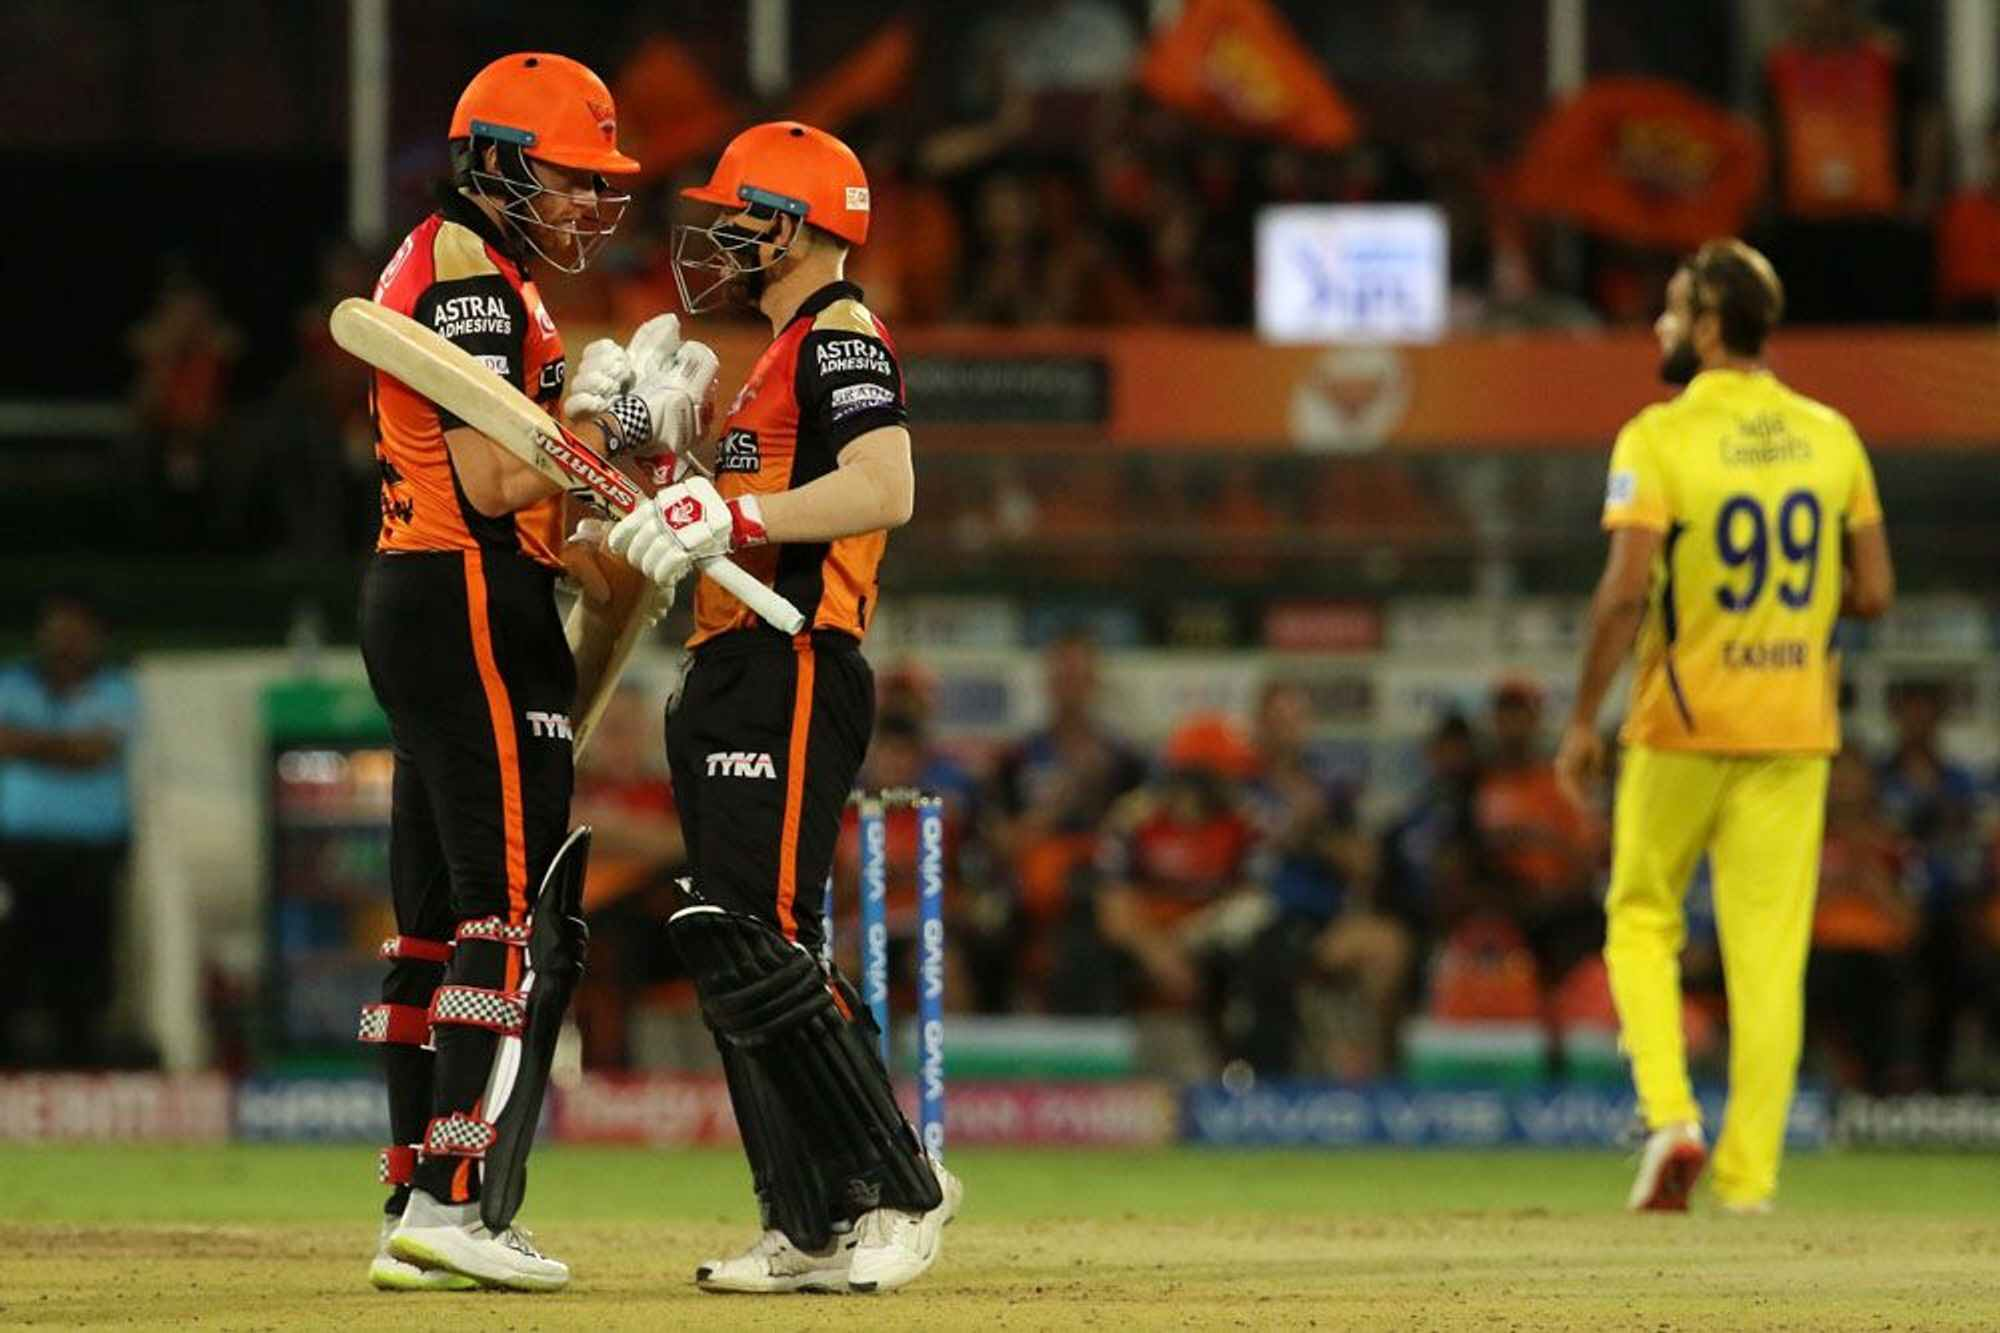 Sunrisers Hyderabad in IPL 2020